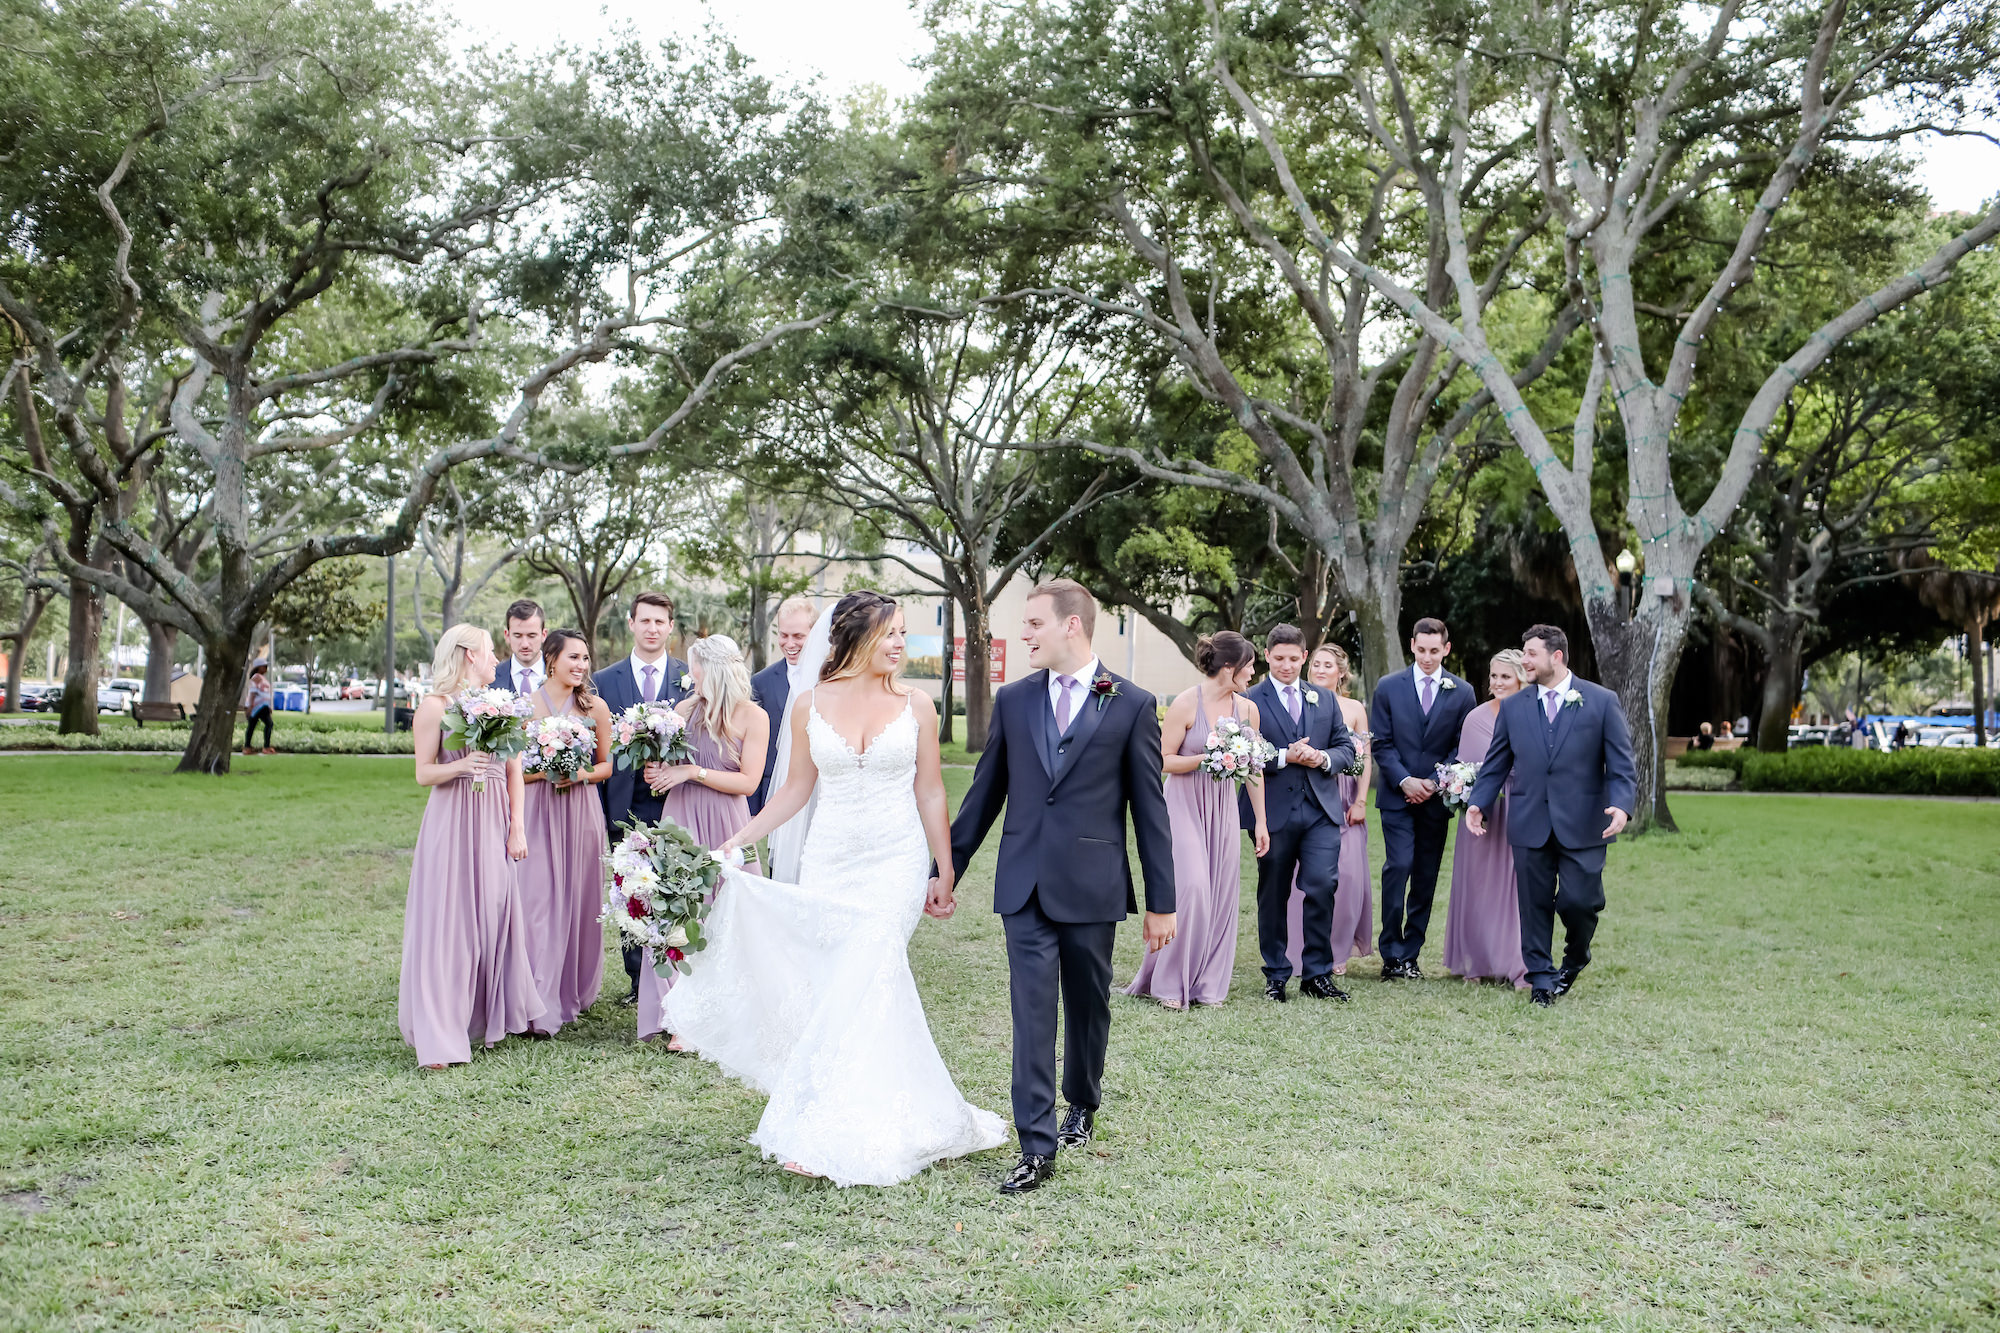 Florida Wedding Party in Straub Park in Downtown St. Petersburg, Bridesmaids Wearing Long Mix and Match Mauve Dresses, Groomsmen in Purple Ties   Florida Wedding Photographer Lifelong Photography Studio   Wedding Hair and Makeup Artists Michele Renee the Studio